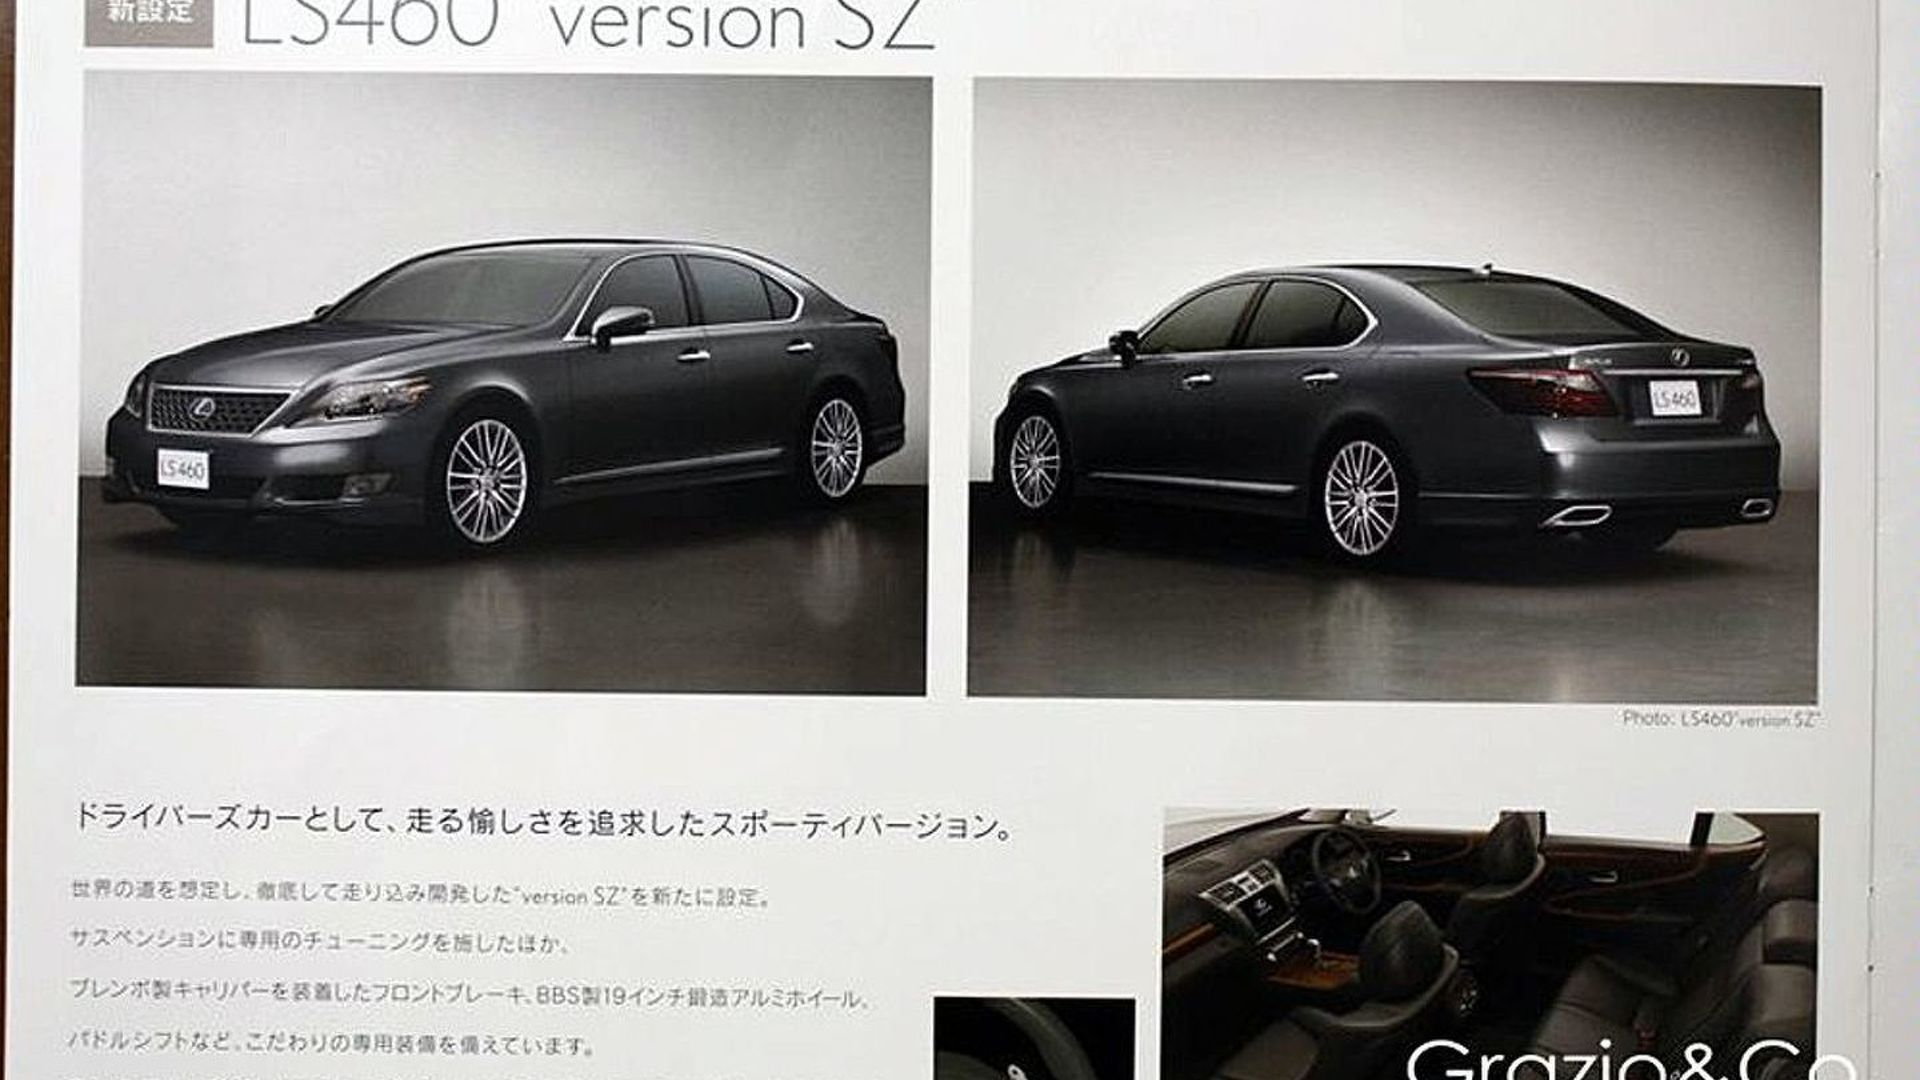 2010 Lexus LS sedan brochure leaks showing mild updates